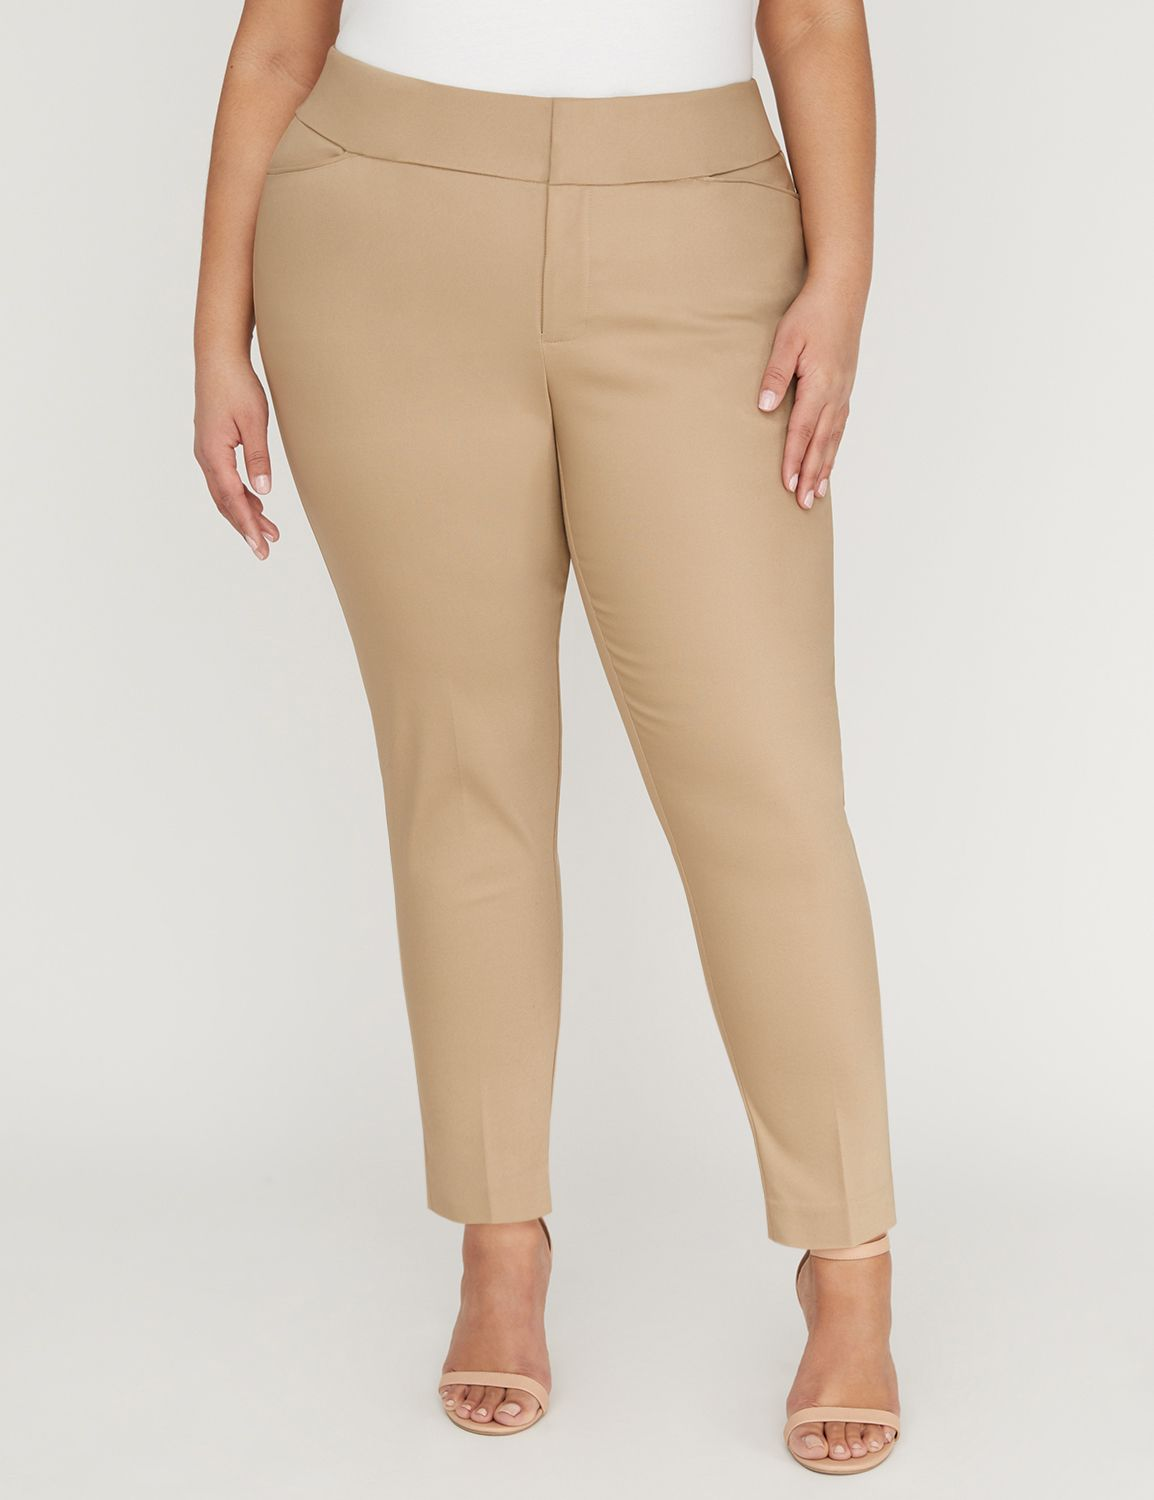 Updated Modern Stretch Ankle Pant 1087775 MODERN STRETCH WIDE WAISTBA MP-300097577